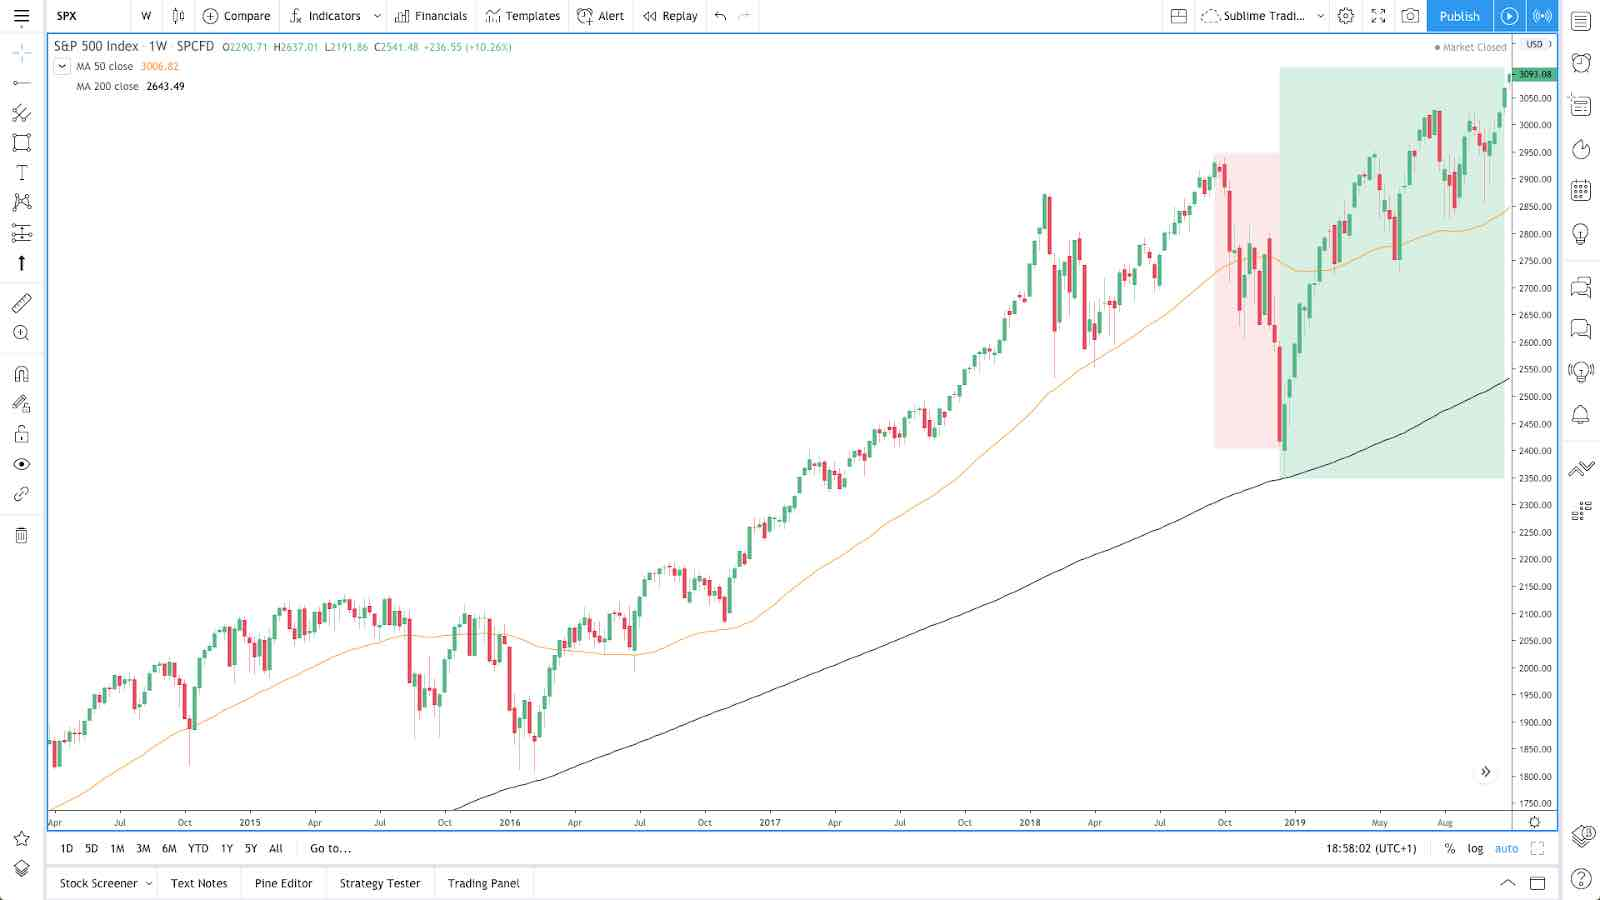 Weekly Timeframe - Price finds support at the 200sma in 2018